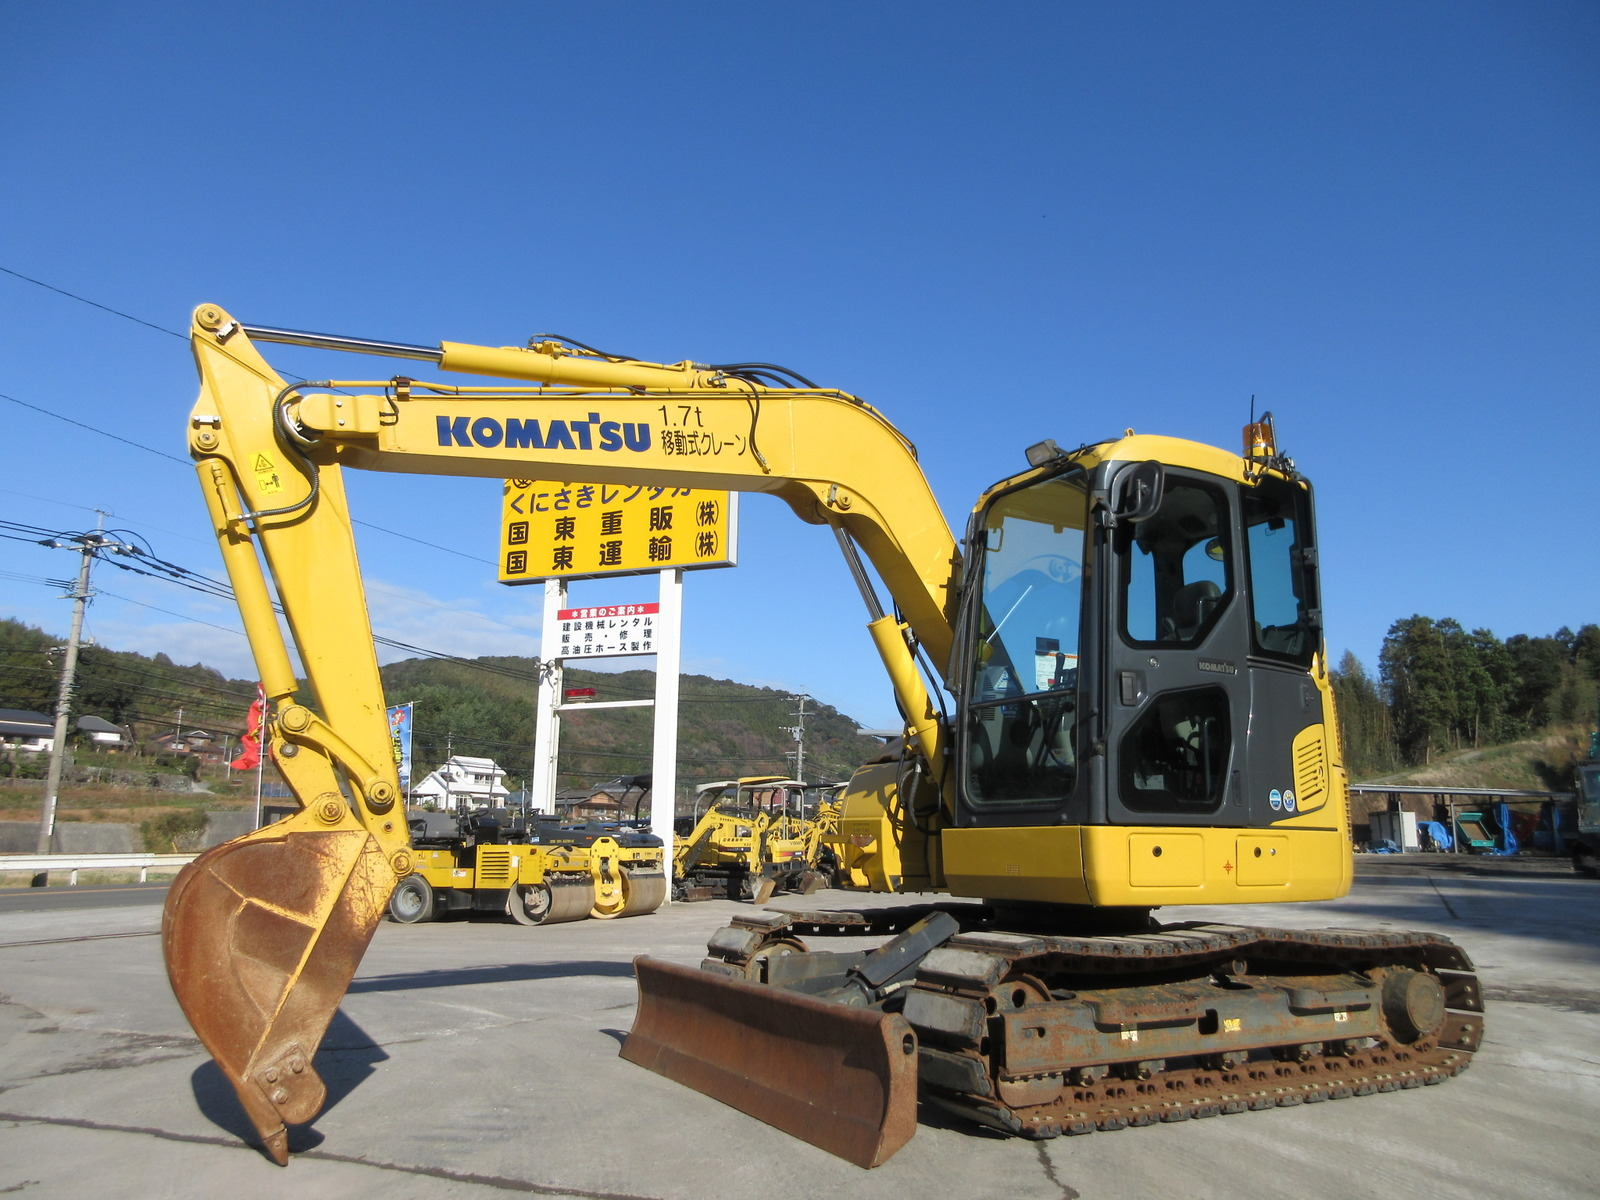 Used Construction Machine used Excavator KOMATSU PC78US-10 Photos